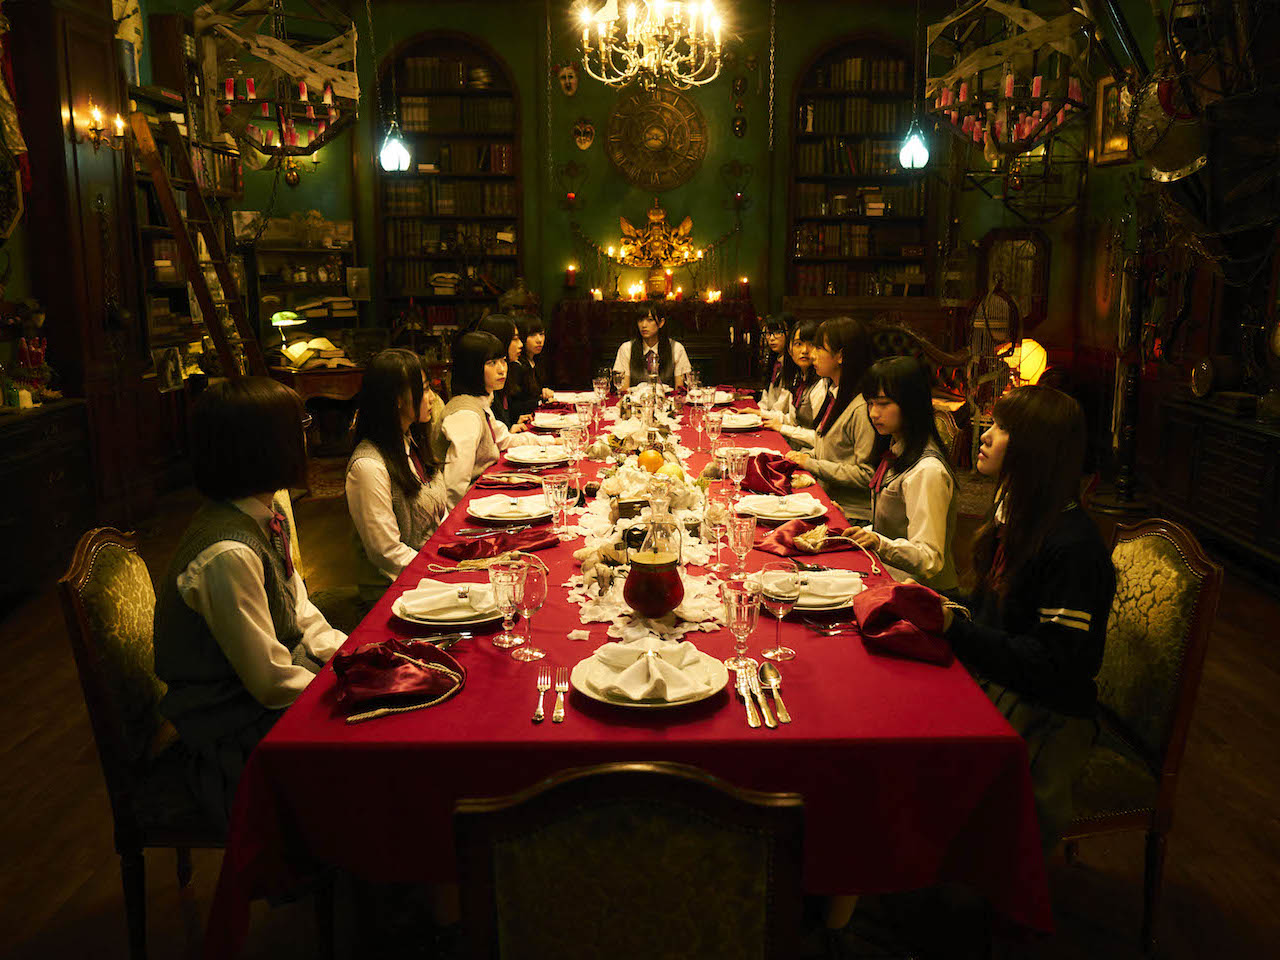 Netflix February-ReMind scene of all characters sitting at large ornate dinner table